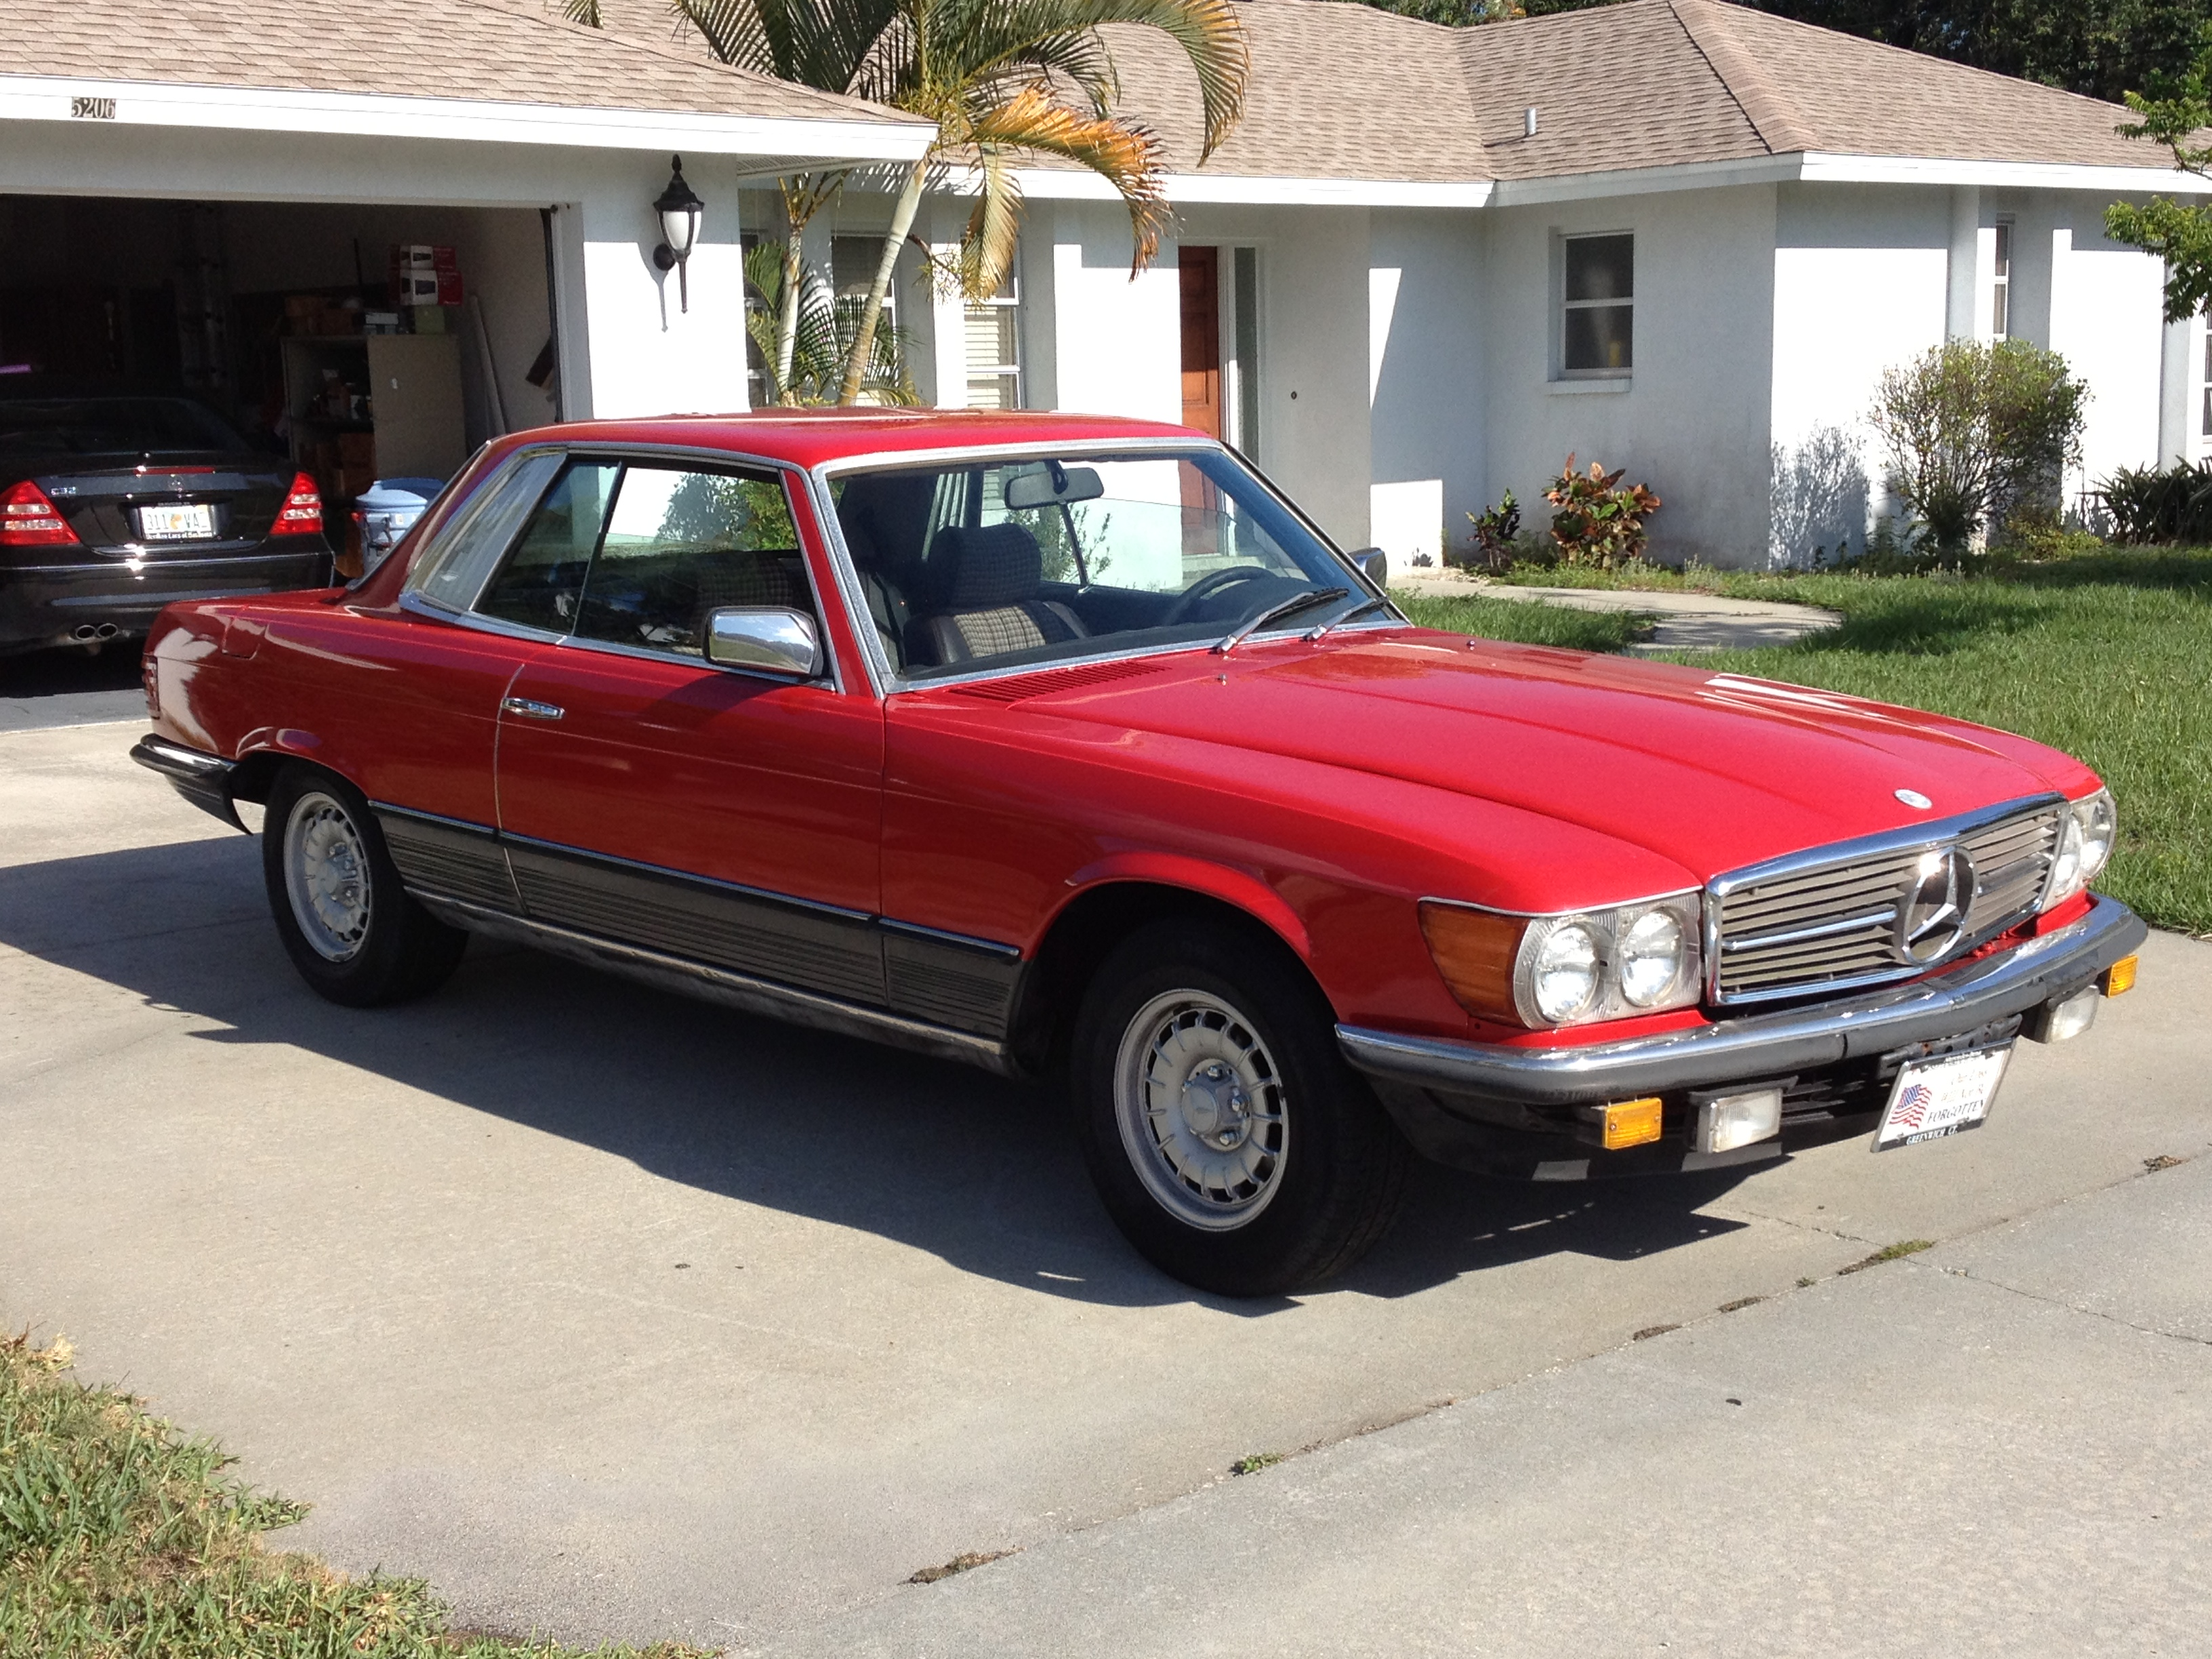 1980 Mercedes-Benz 450SLC Rally Type Car